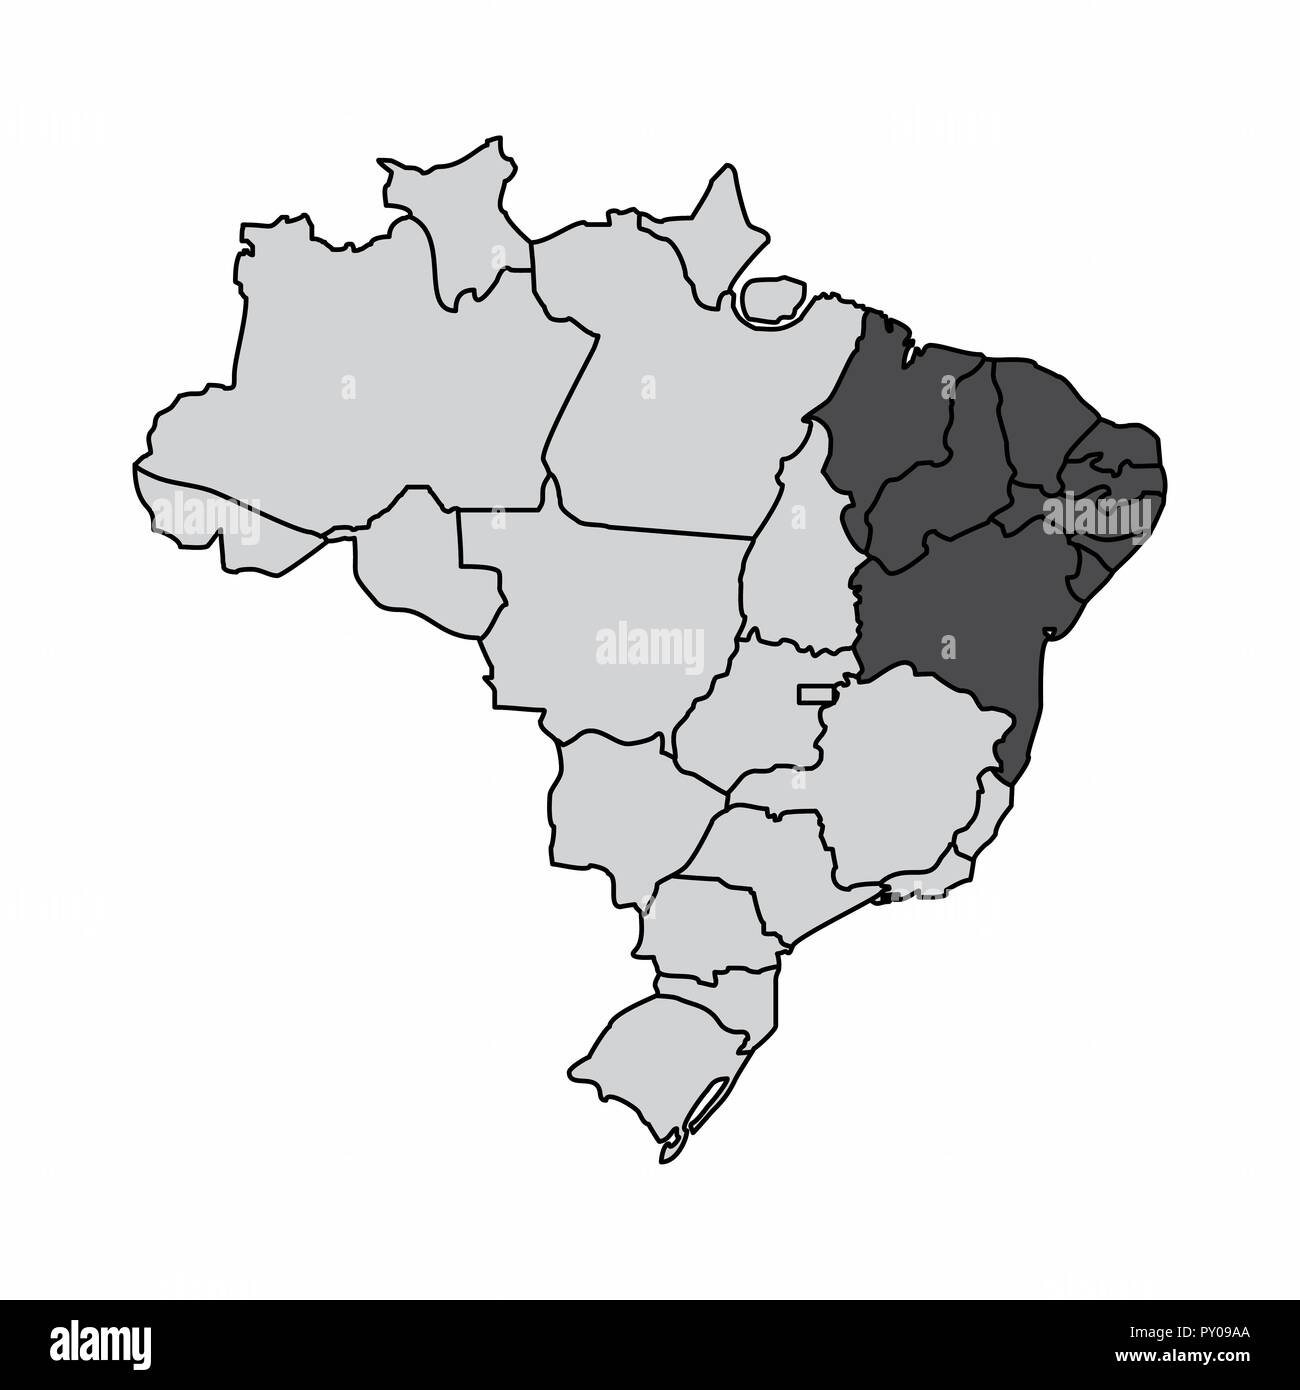 Illustration of a map of Brazil with the northeast region ...